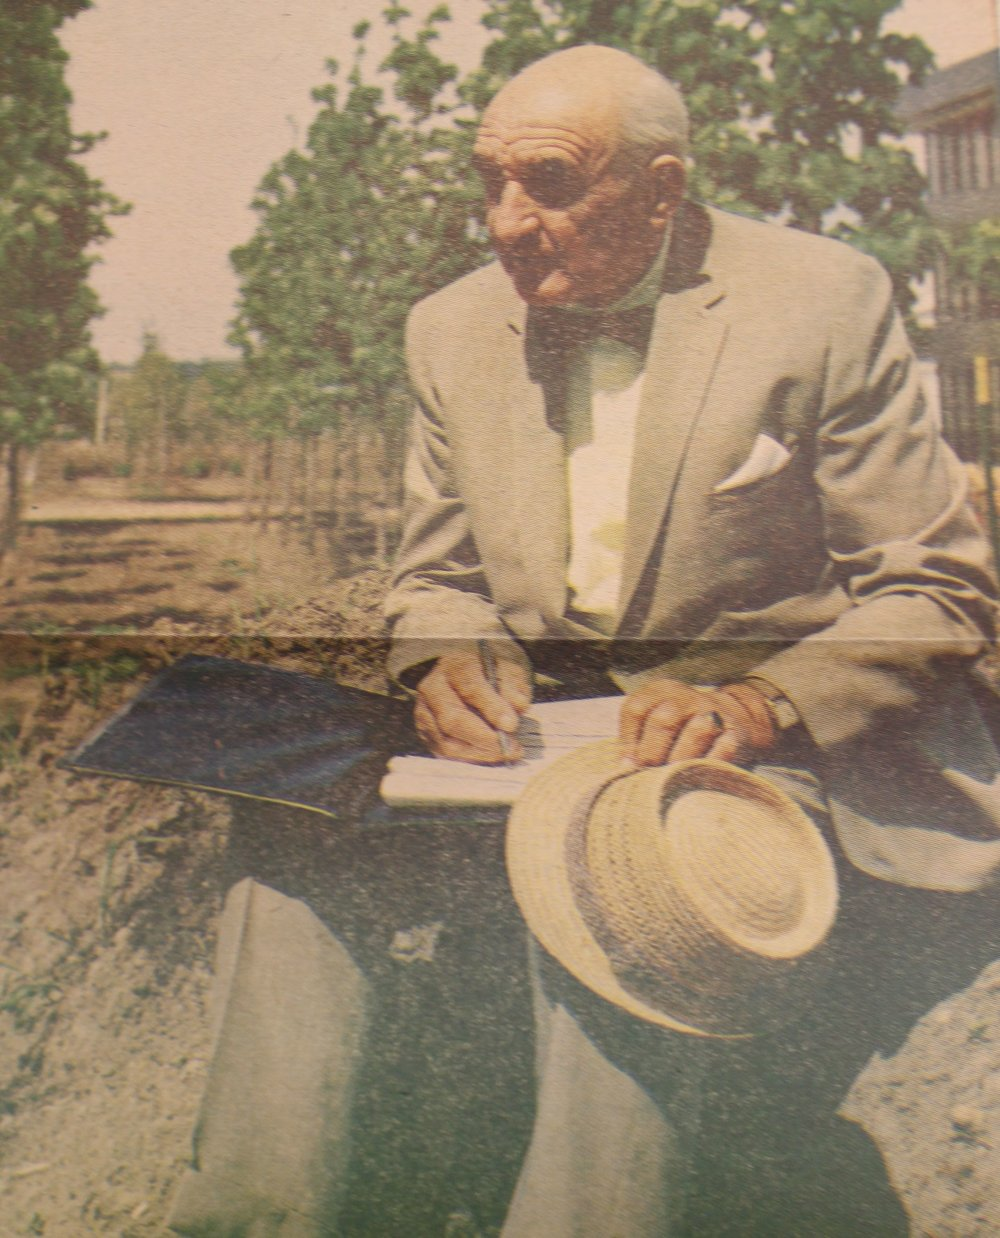 Fred See, Park Superintendent was integral to the project